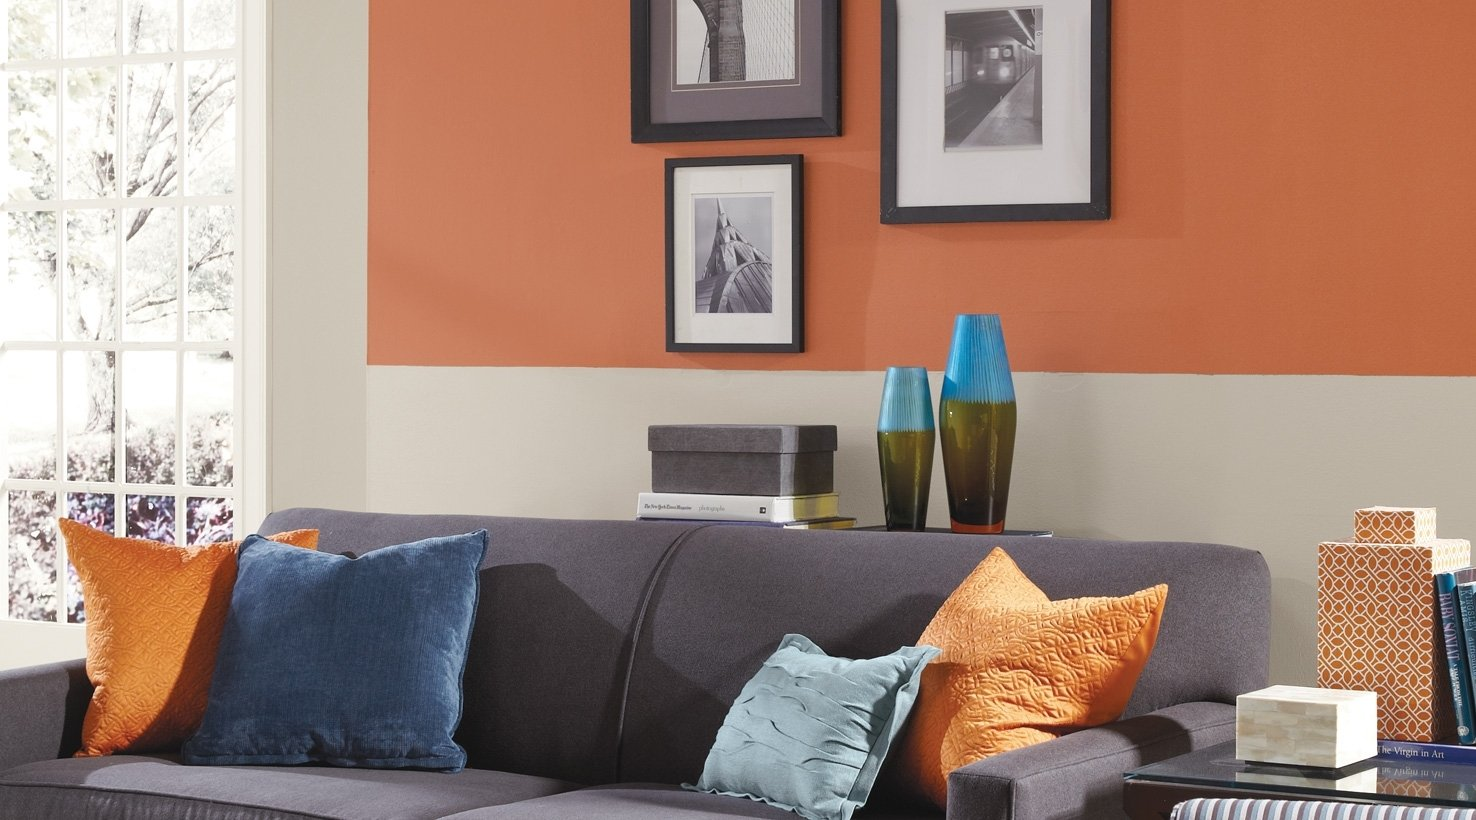 10 Lovely Living Room Paint Ideas Pictures living room paint color ideas inspiration gallery sherwin williams 50 2021